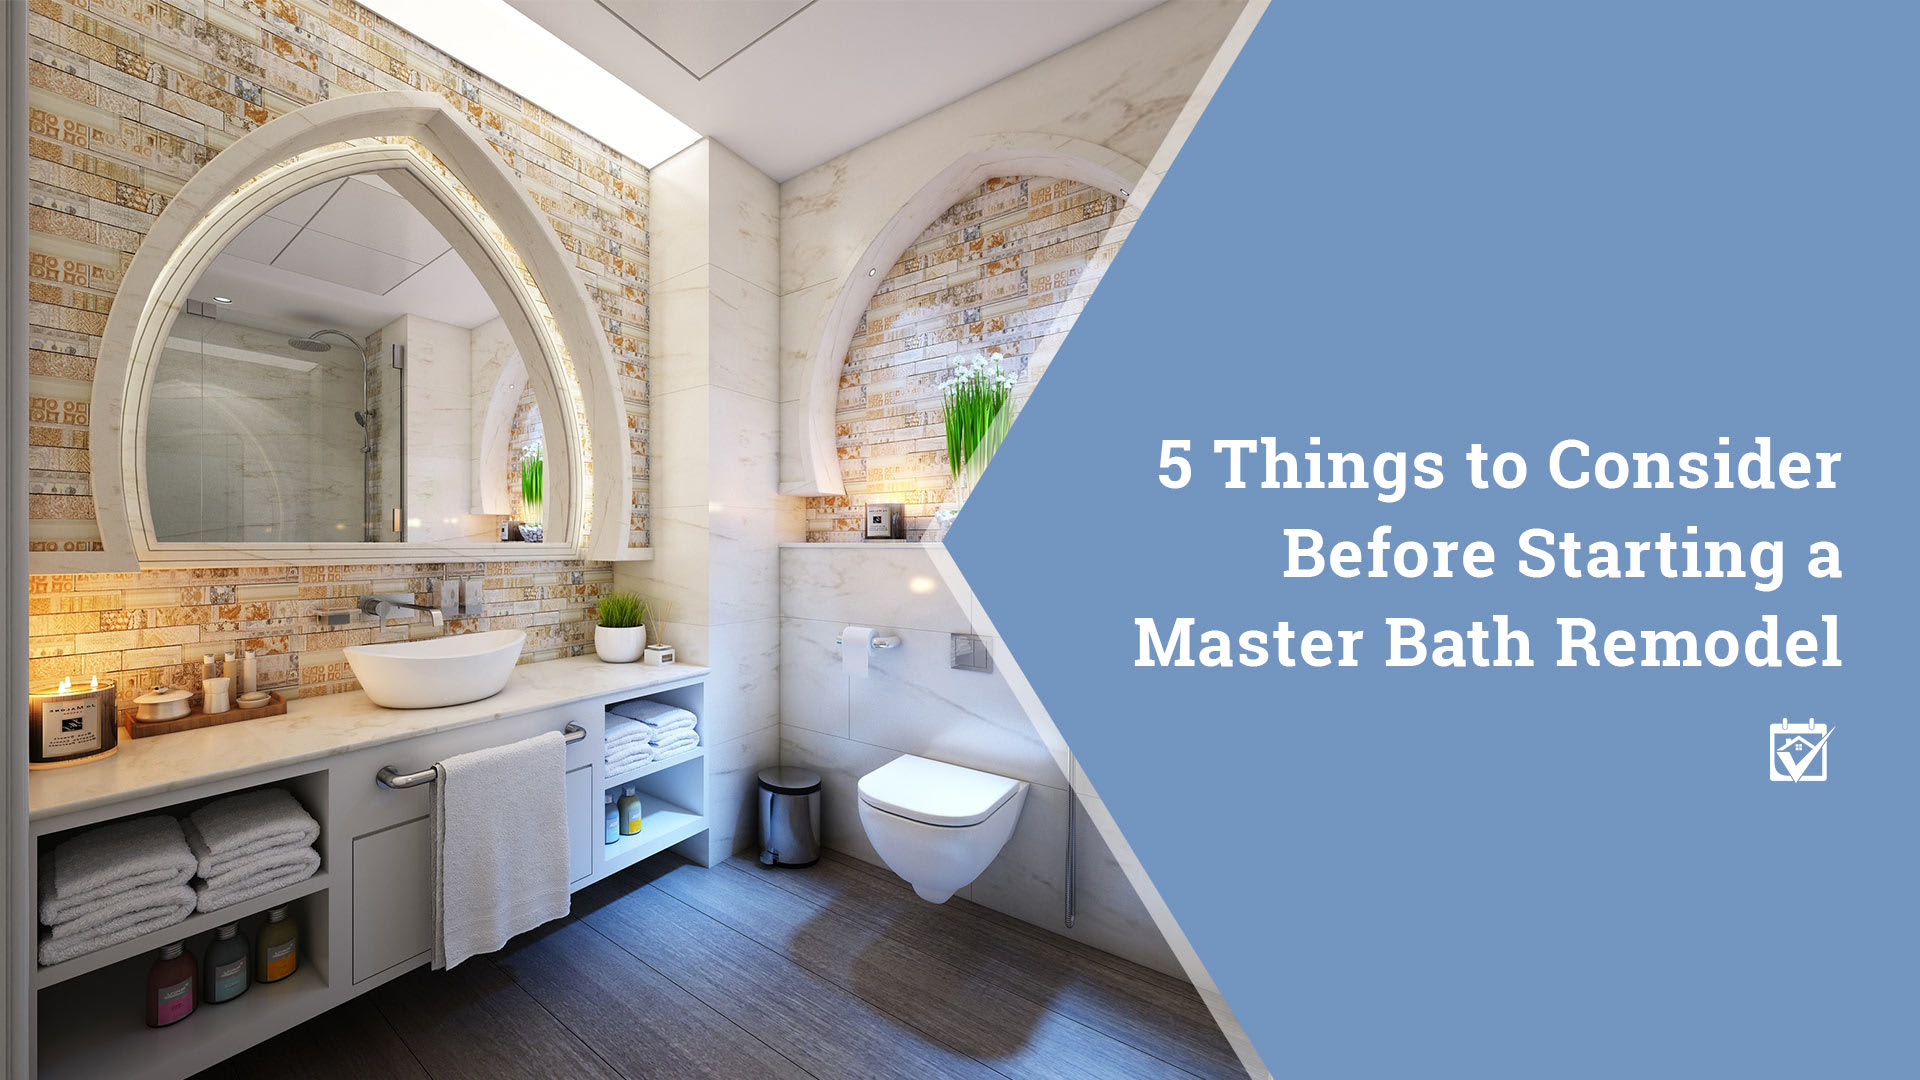 5 Things to Consider Before Starting a Master Bath Remodel on bathroom vanities product, bathroom mirrors product, bathroom repair, bathroom cabinets, bathroom makeovers, bathroom showers, bathroom pipe leak, bathroom decor, bathroom sinks product, bathroom flooring, bathroom windows, bathroom ideas, bathroom light fixtures, bathroom redo, bathroom color combinations, bathroom doors, bathroom paint, bathroom design, bathroom tile, bathroom storage,